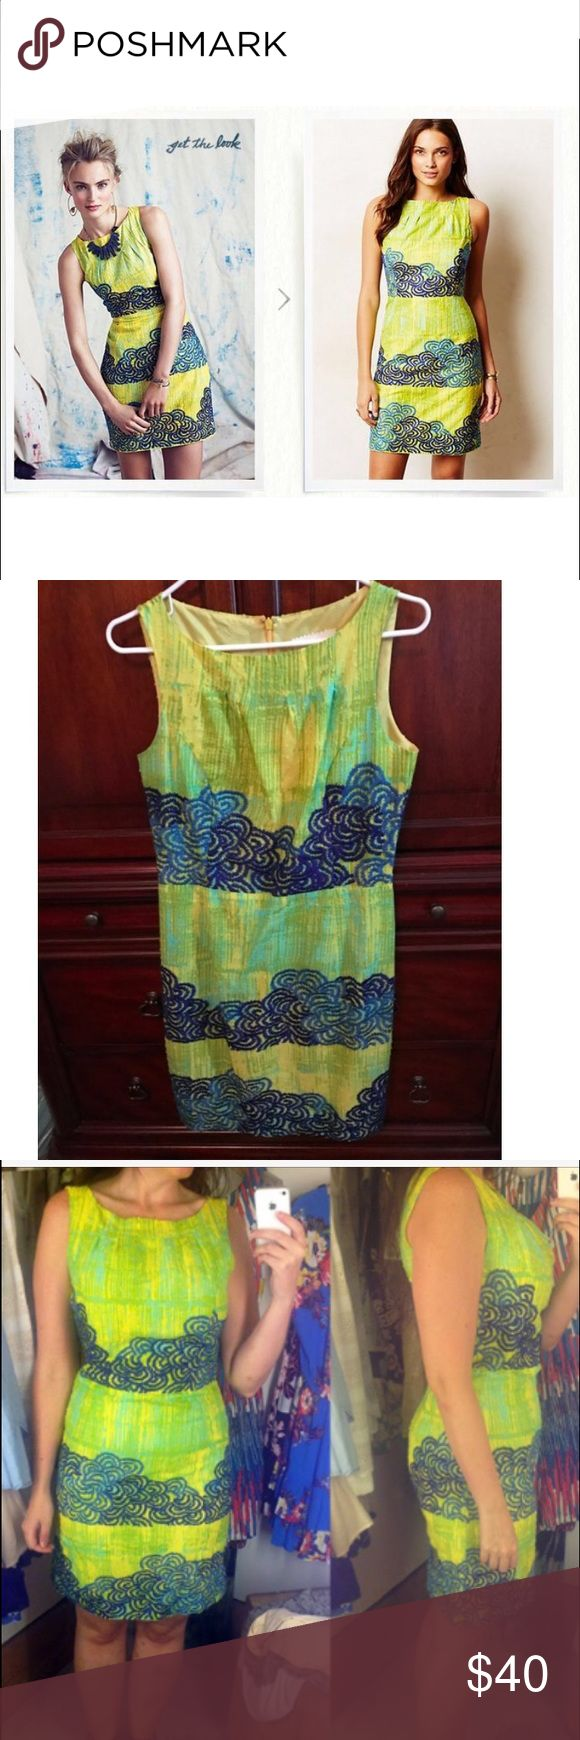 Anthropologie Tabitha Azure Scroll Dress Blue-green shift dress slim fit, romantic mixed with a hint of the unexpected; worn once does not fit me anymore unfortunately very artsy beautiful dress Anthropologie Dresses Mini